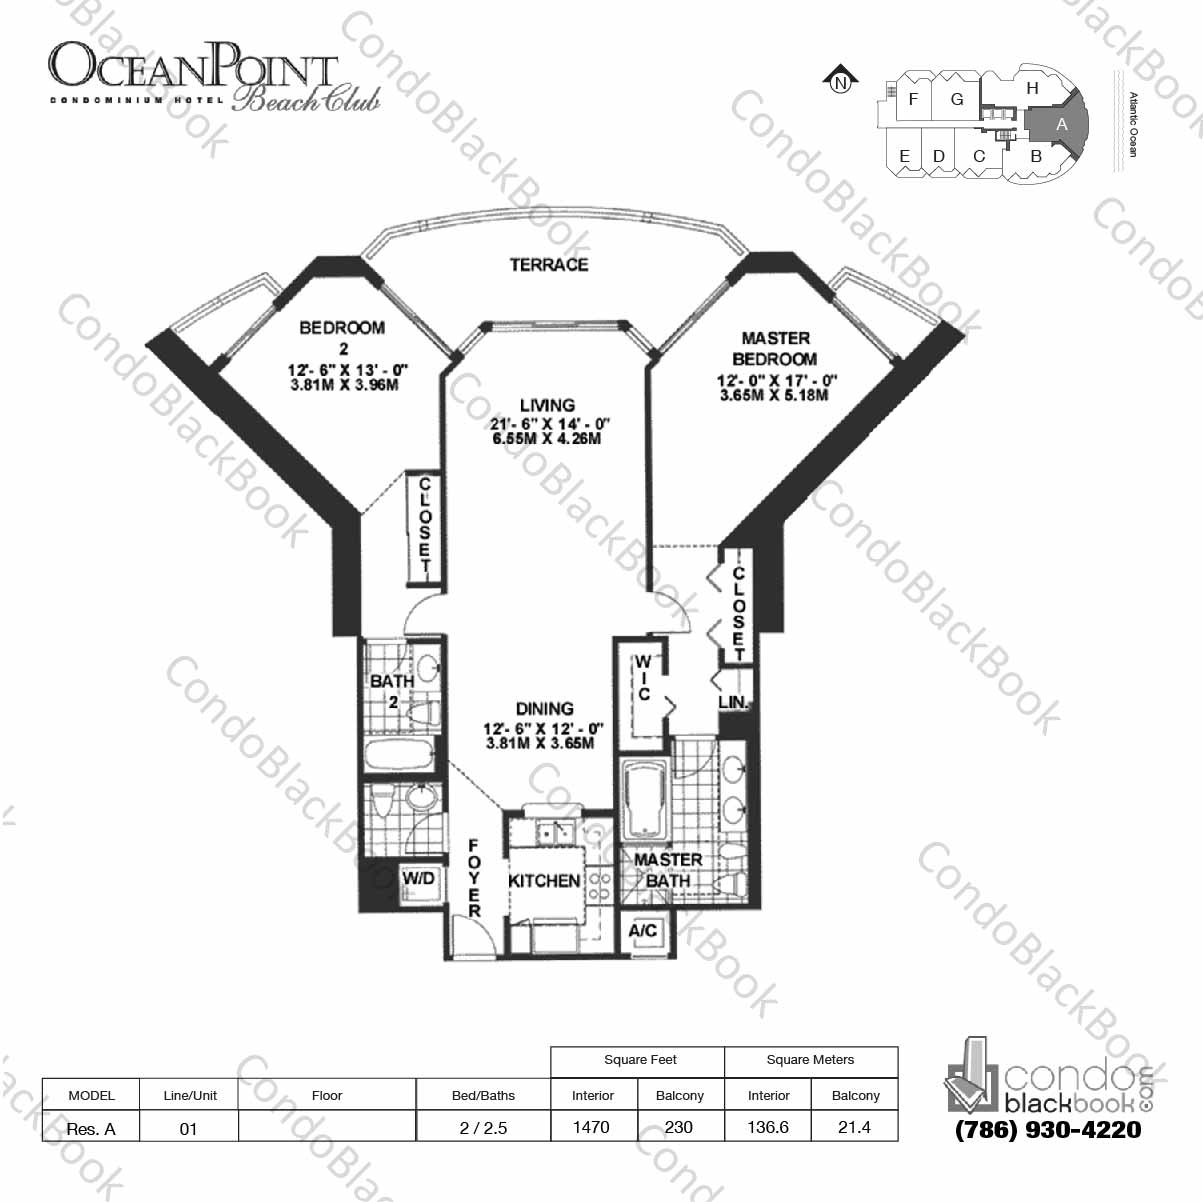 Floor plan for Ocean Point Beach Club Sunny Isles Beach, model Res. A, line 01, 2 / 2.5 bedrooms, 1470 sq ft